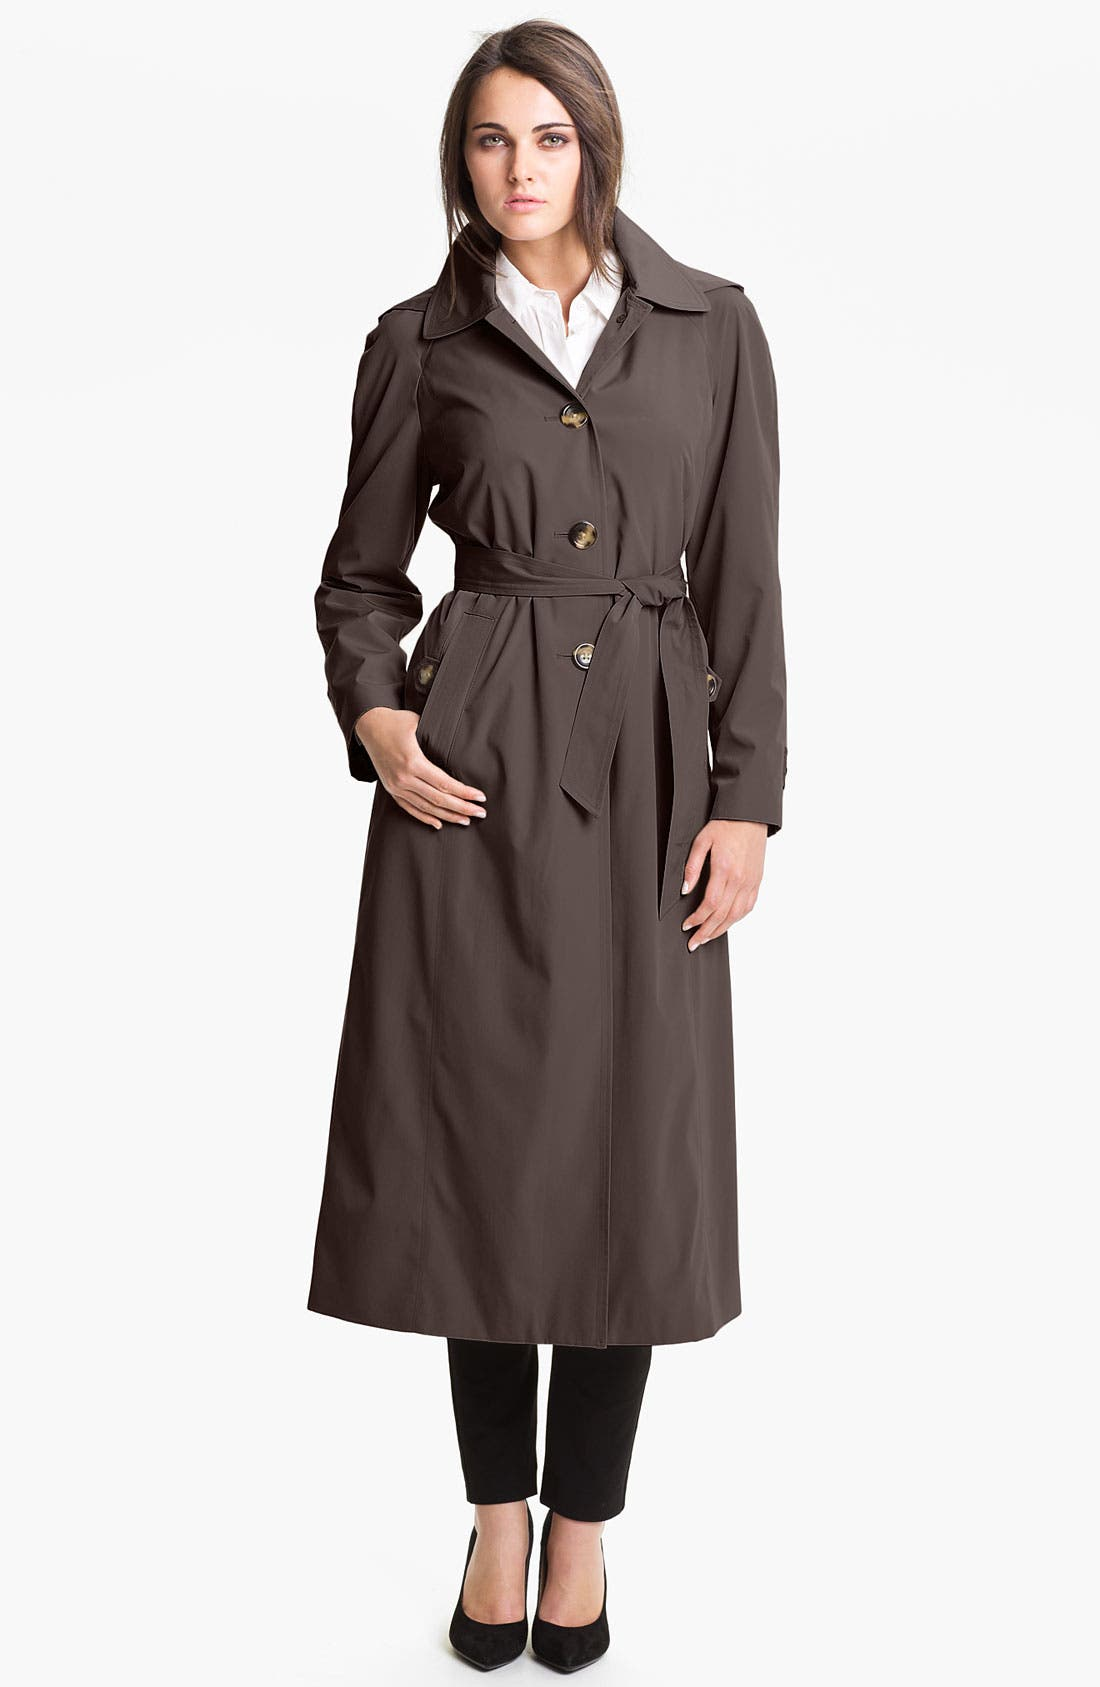 Main Image - London Fog Raglan Sleeve Raincoat with Detachable Hood